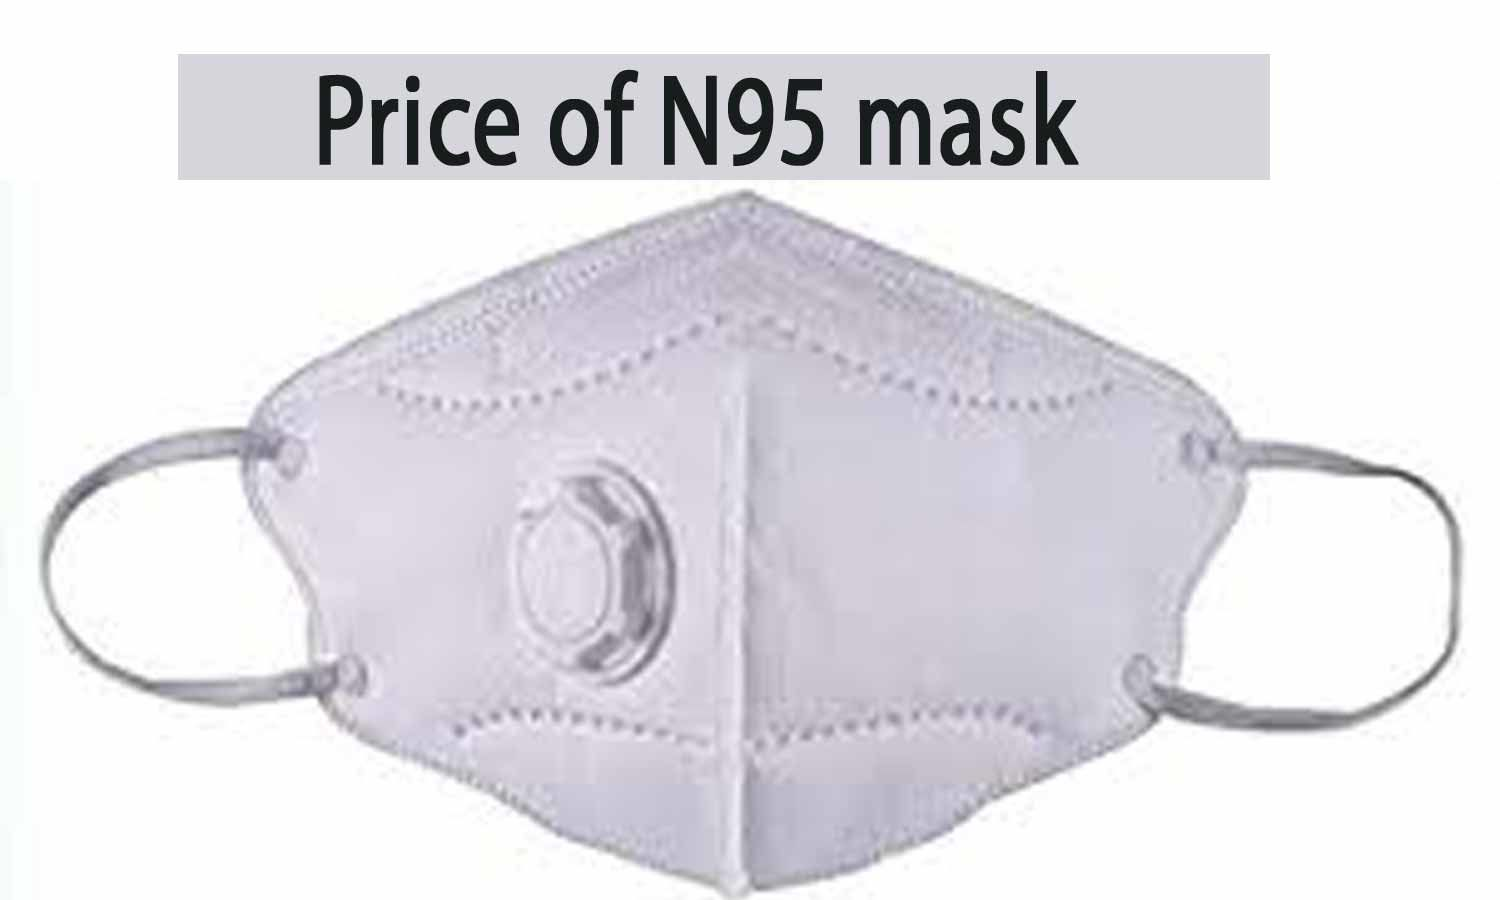 Ensure Parity in price of N-95 masks or face action: NPPA tells sellers